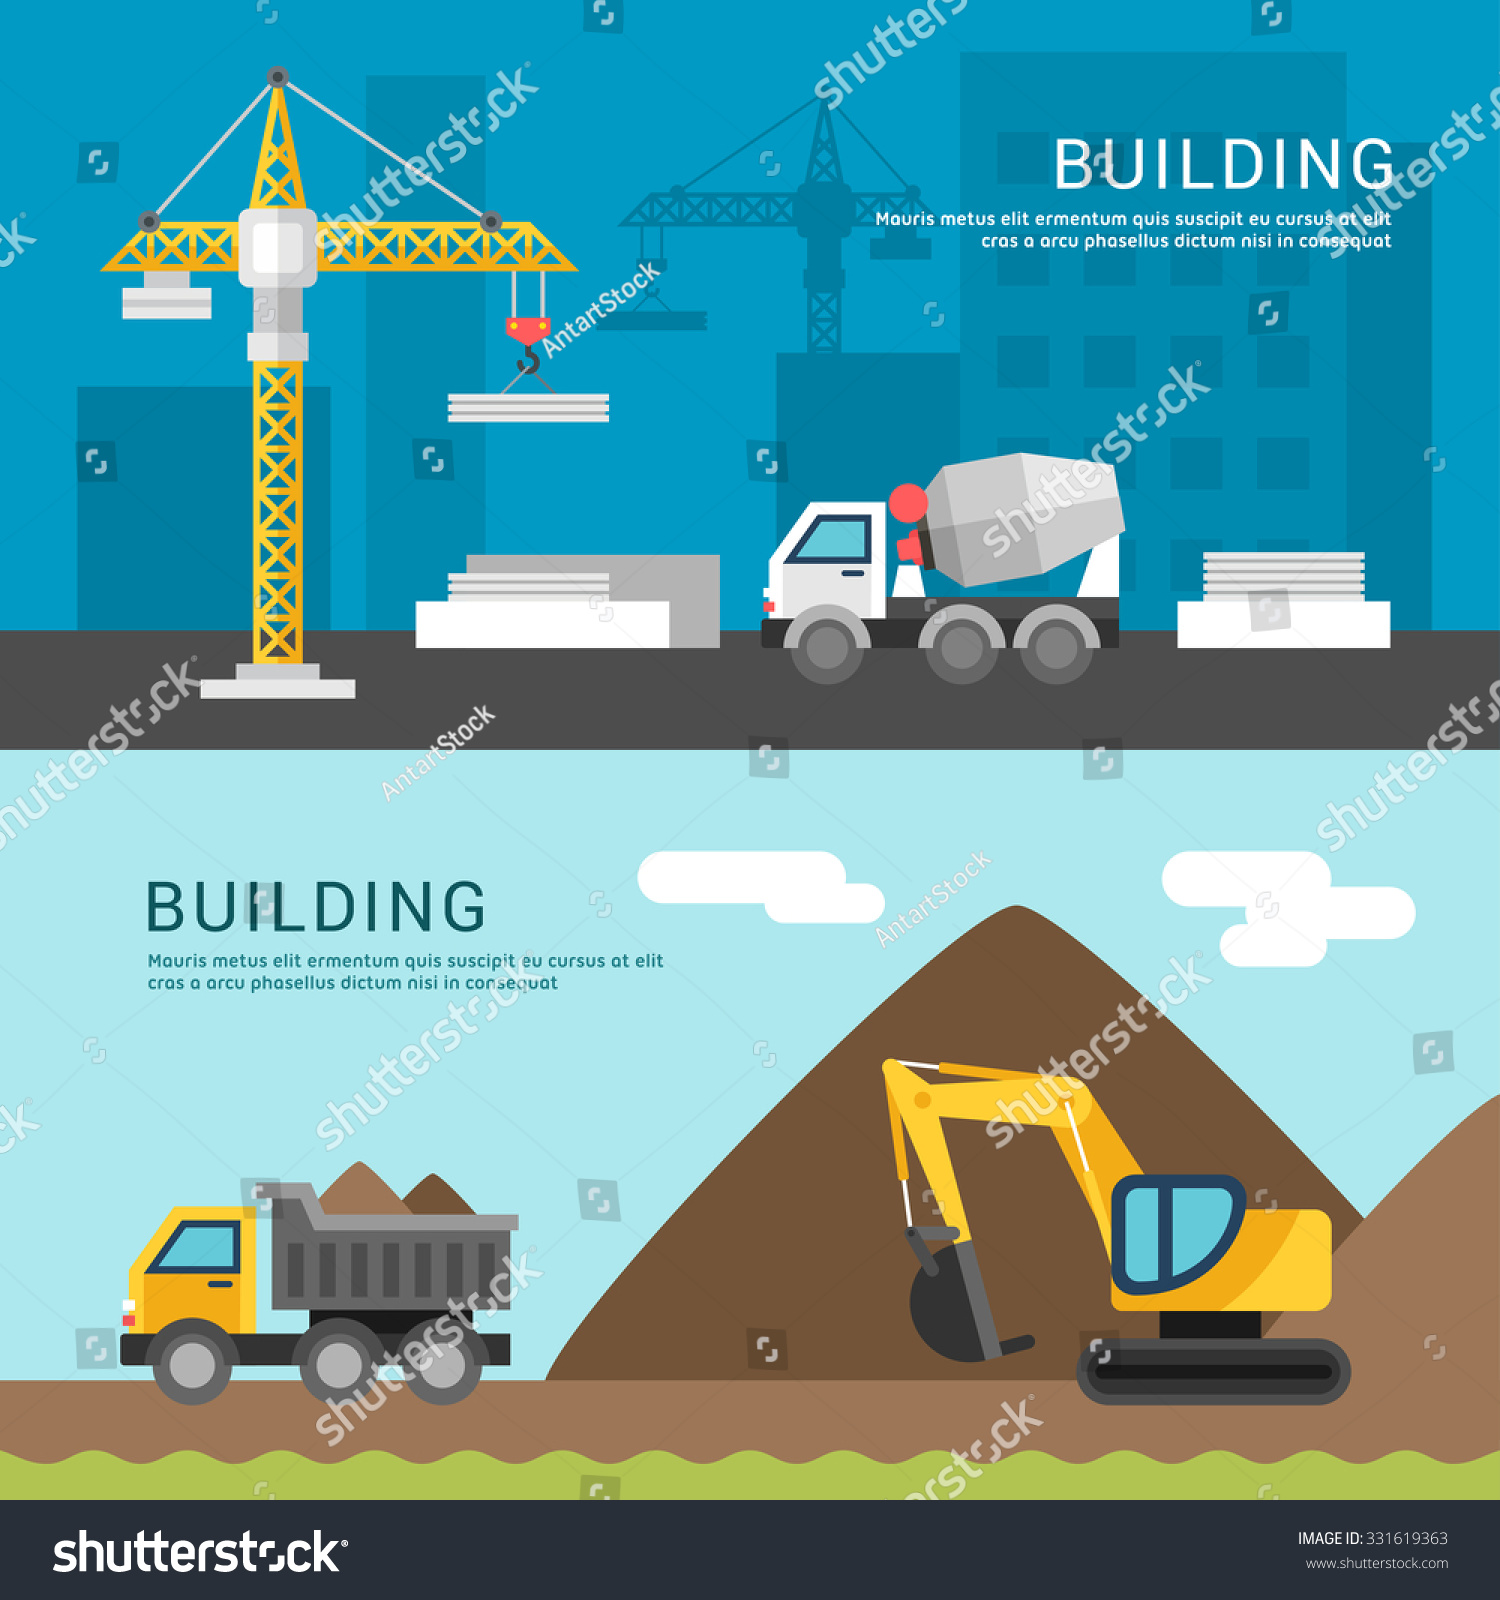 Building Concept Crane and Cement Mixers Dump Truck and Excavator Vector Illustration in Flat Design Style for Web Banners or Promotional Materials